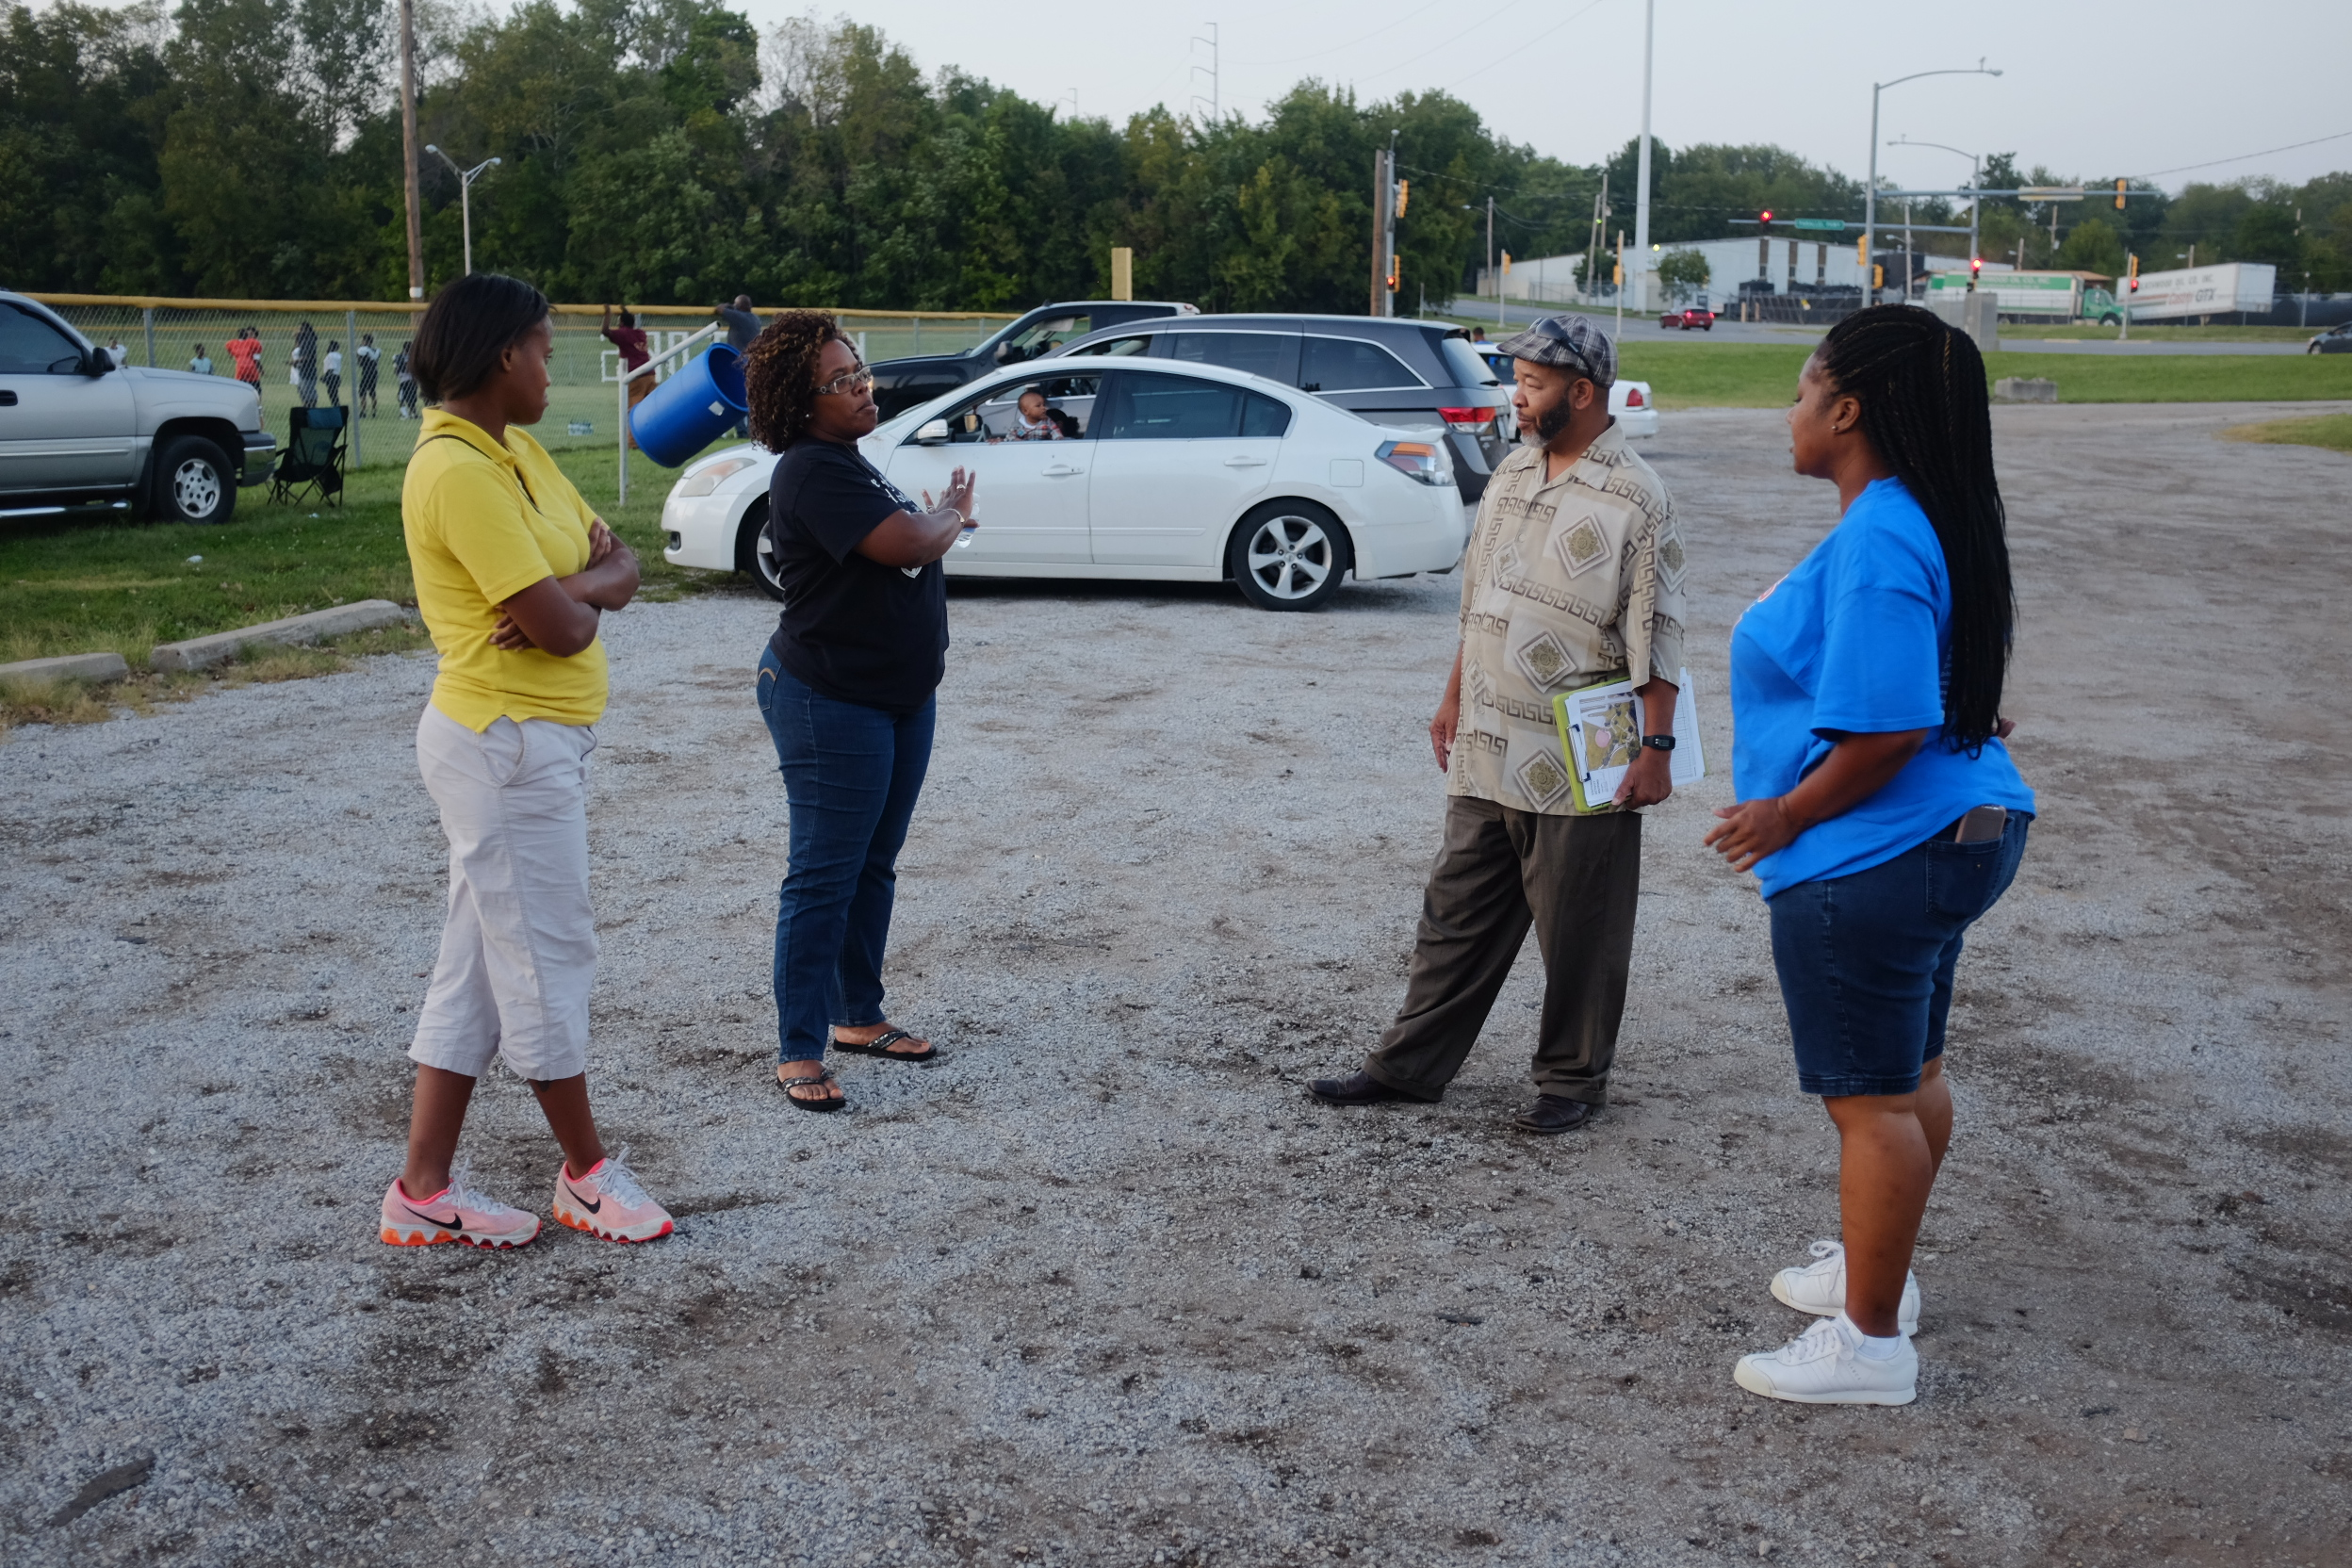 Parents of the KC Gators football team shared their stories about wanting to use the park more.